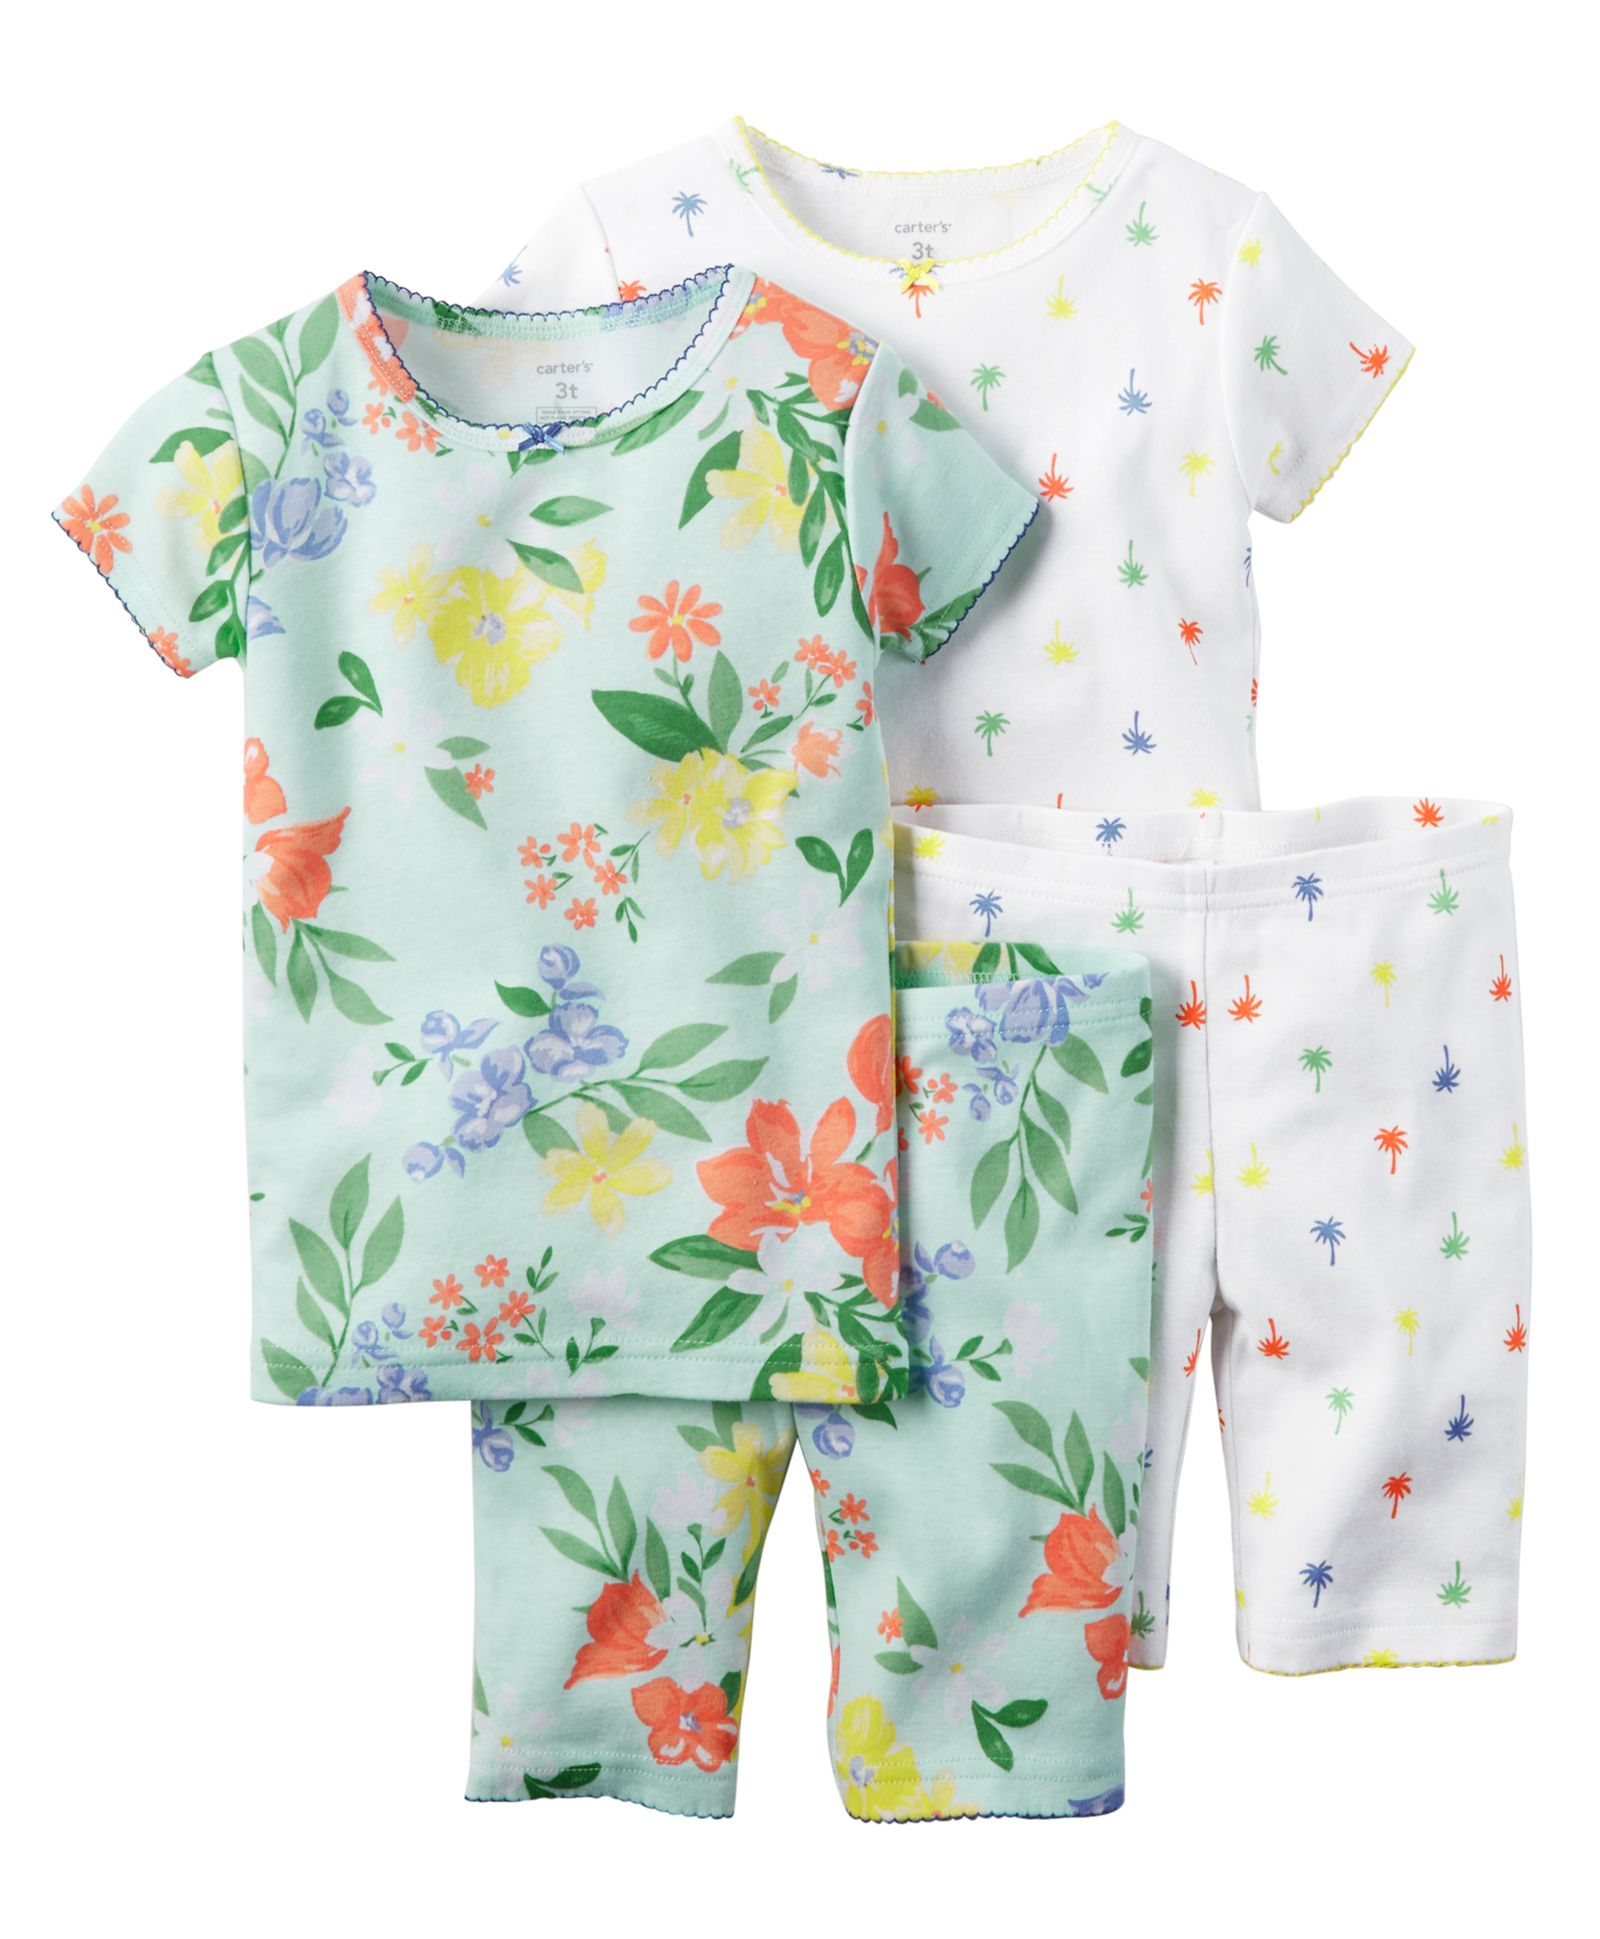 Upto 50% Off Carter's Seasonal Shades By Firstcry | Carter's 4-Piece Snug Fit Cotton PJs @ Rs.1,187.46